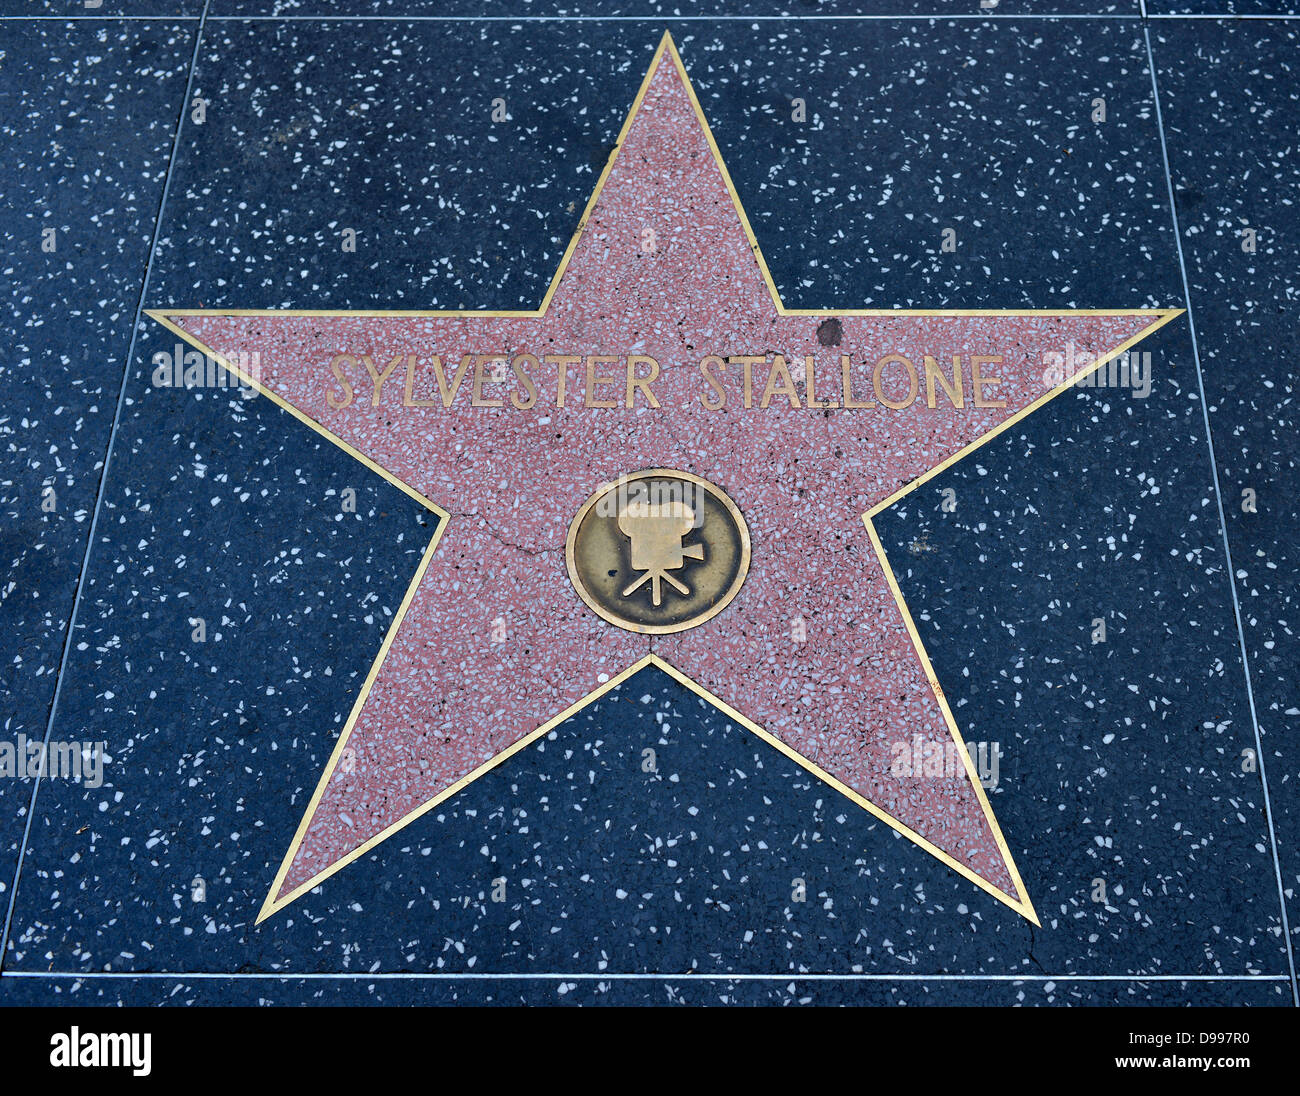 Terrazzo star for artist Sylvester Stallone, category Film, Drumming of Fame, Hollywood boulevard, Hollywood, Los - Stock Image